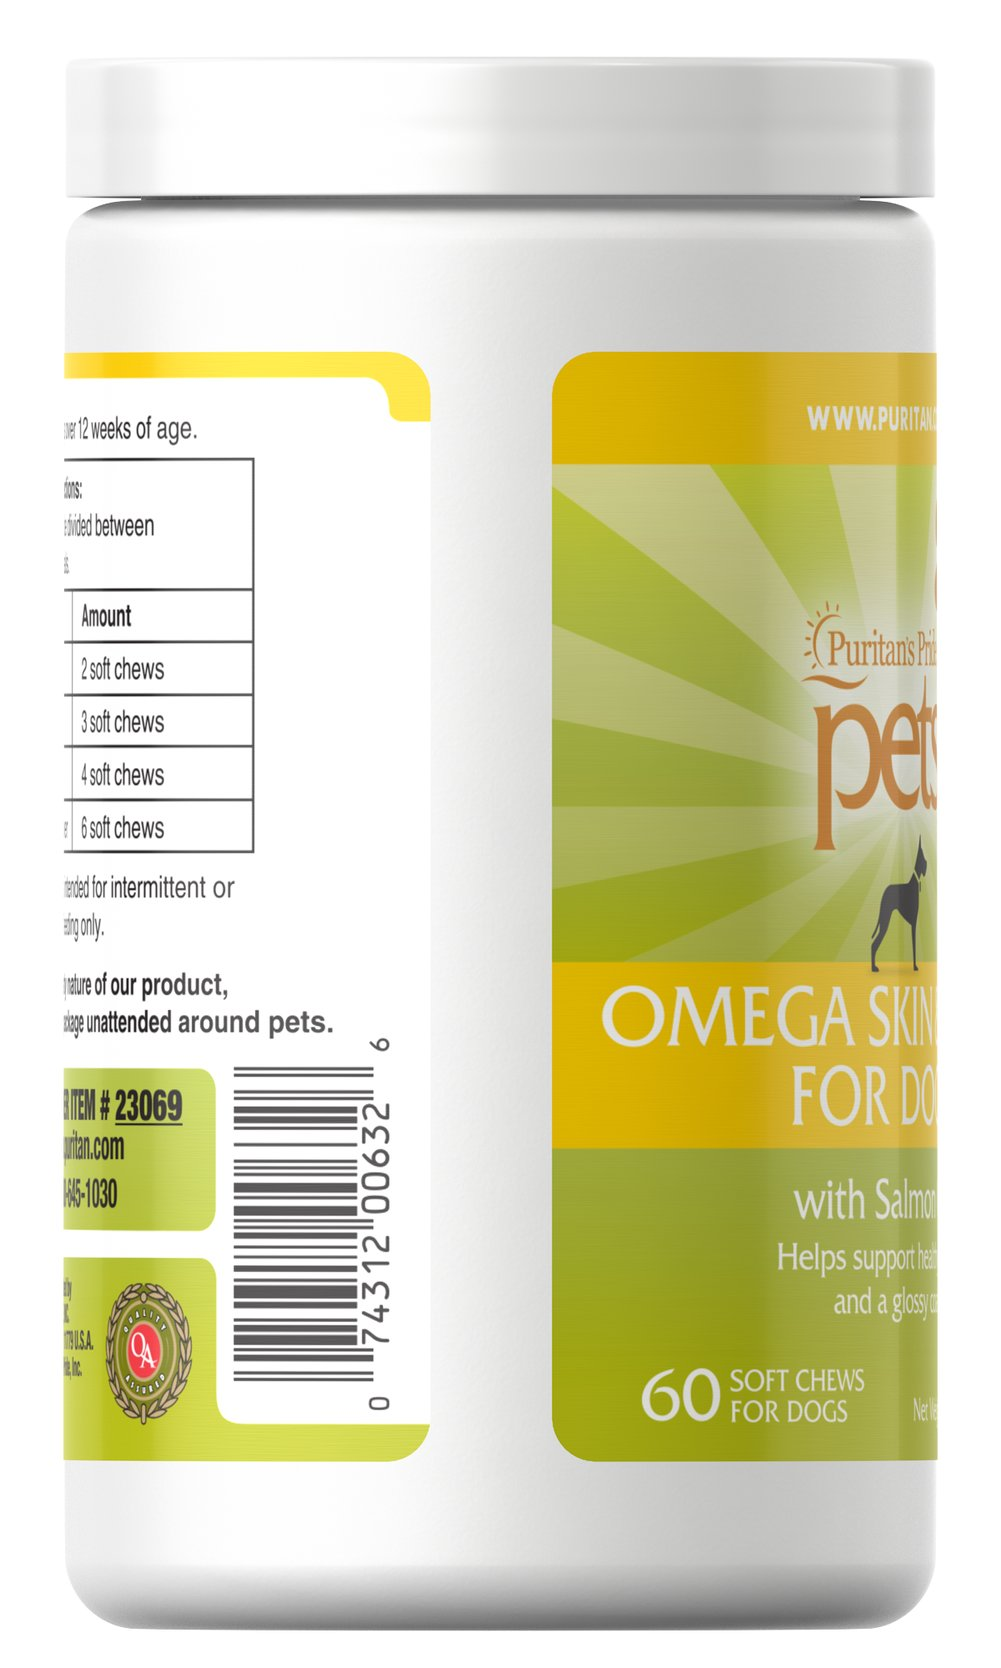 Omega Skin Coat for Dogs Thumbnail Alternate Bottle View